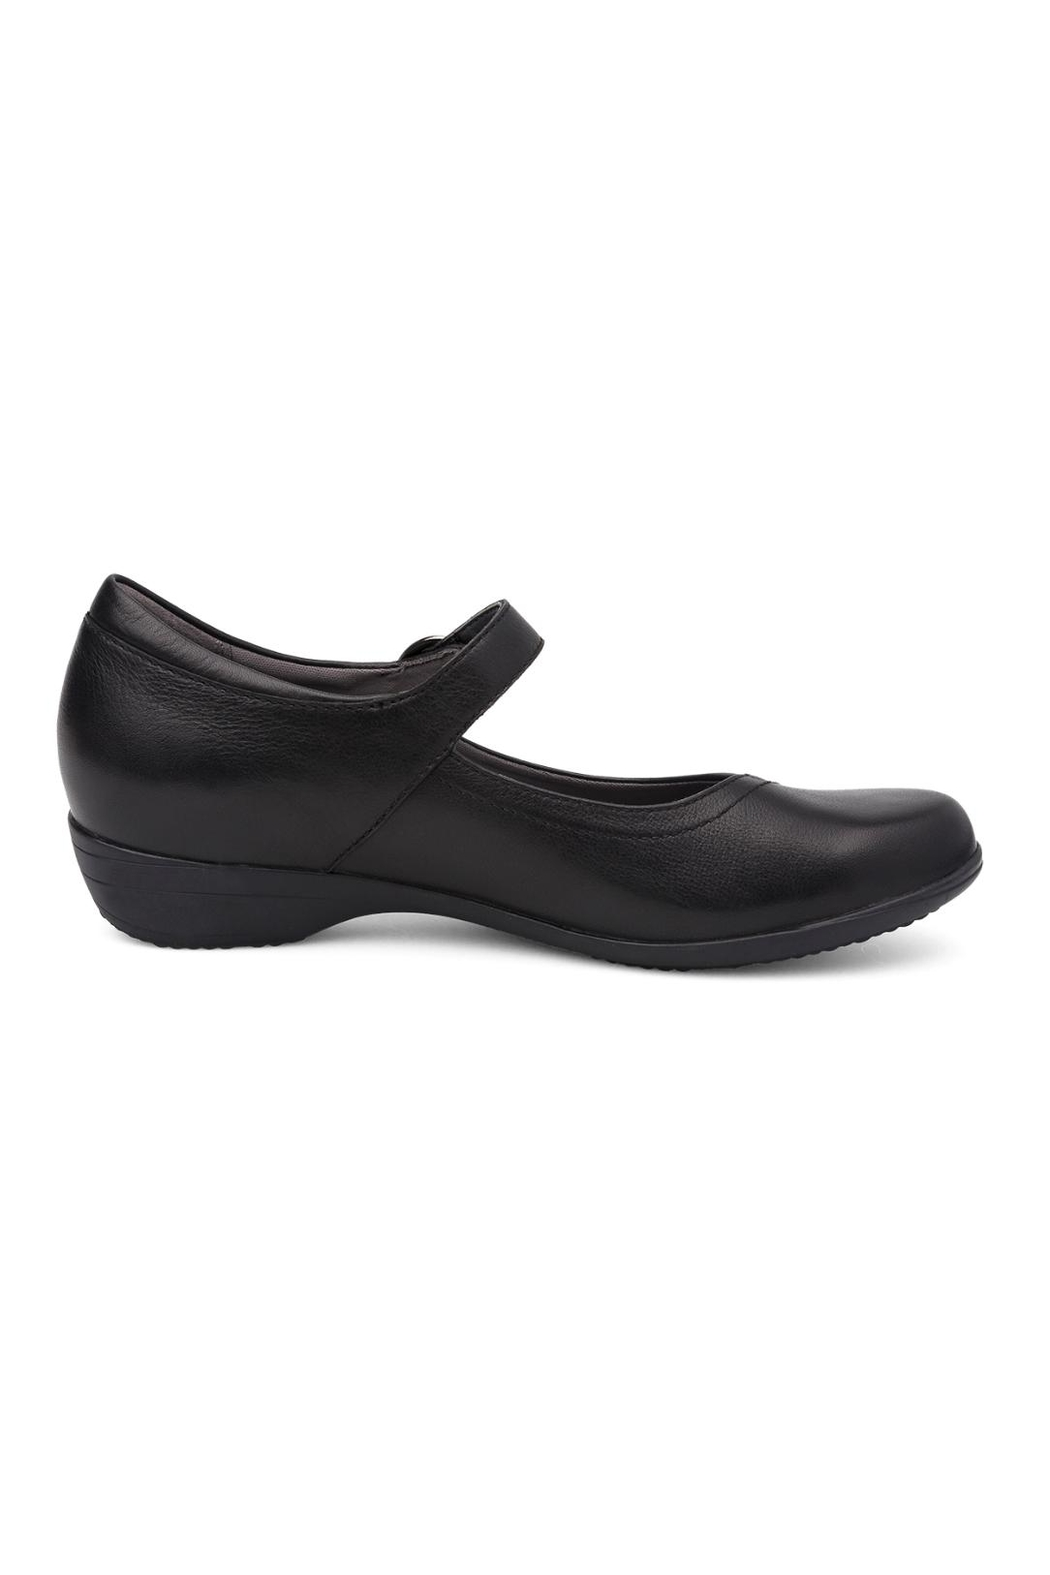 Dansko Fawna Black Shoes - Front Full Image